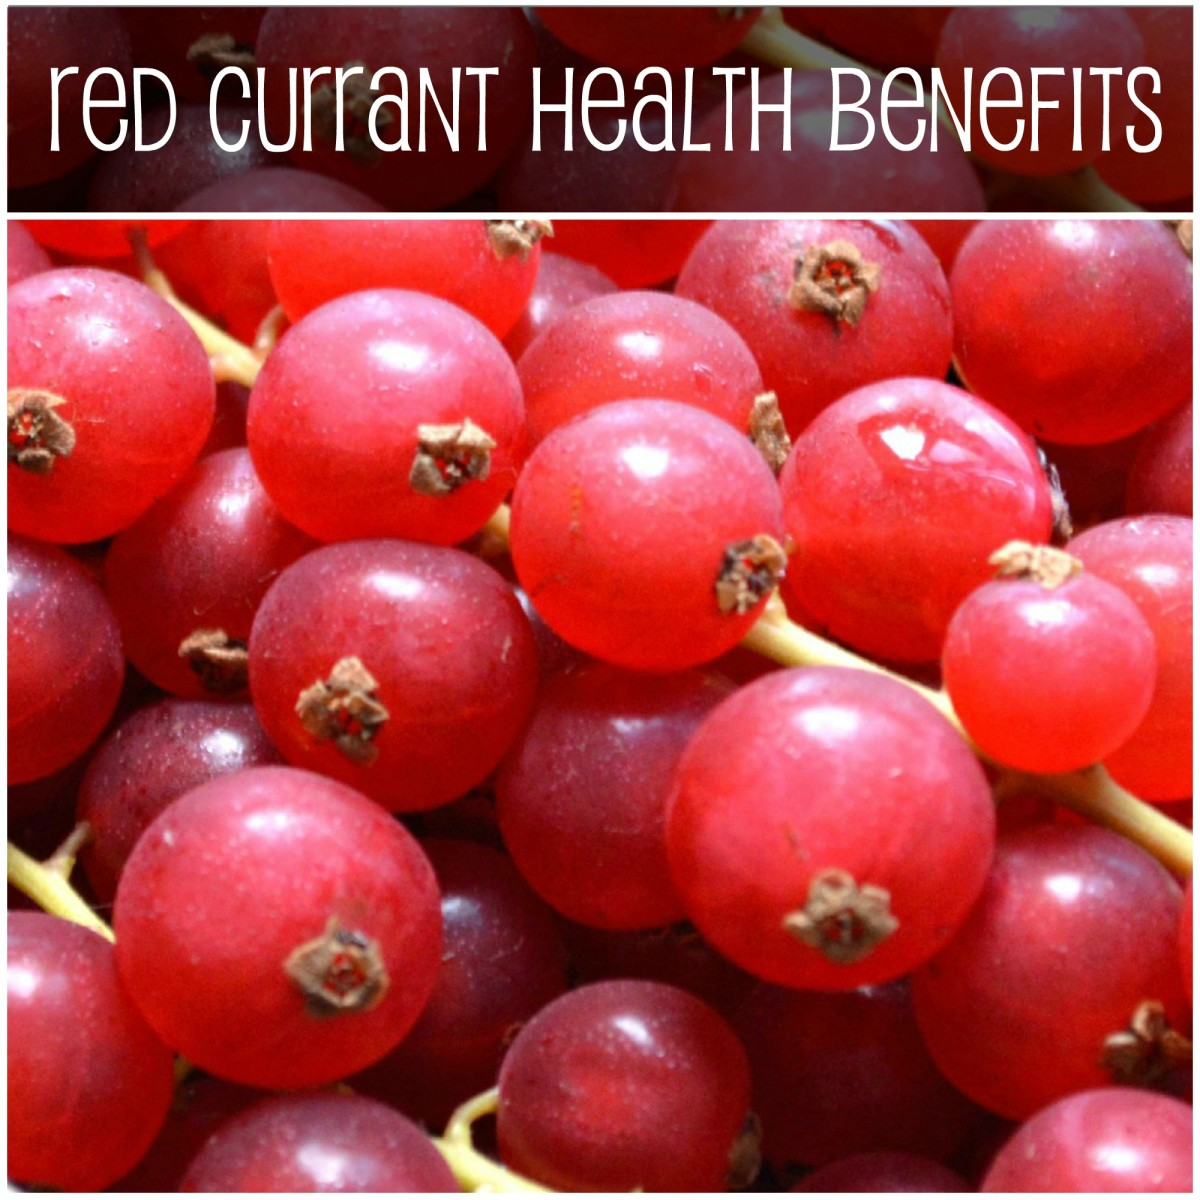 red currant health benefits a tart berry for health caloriebee